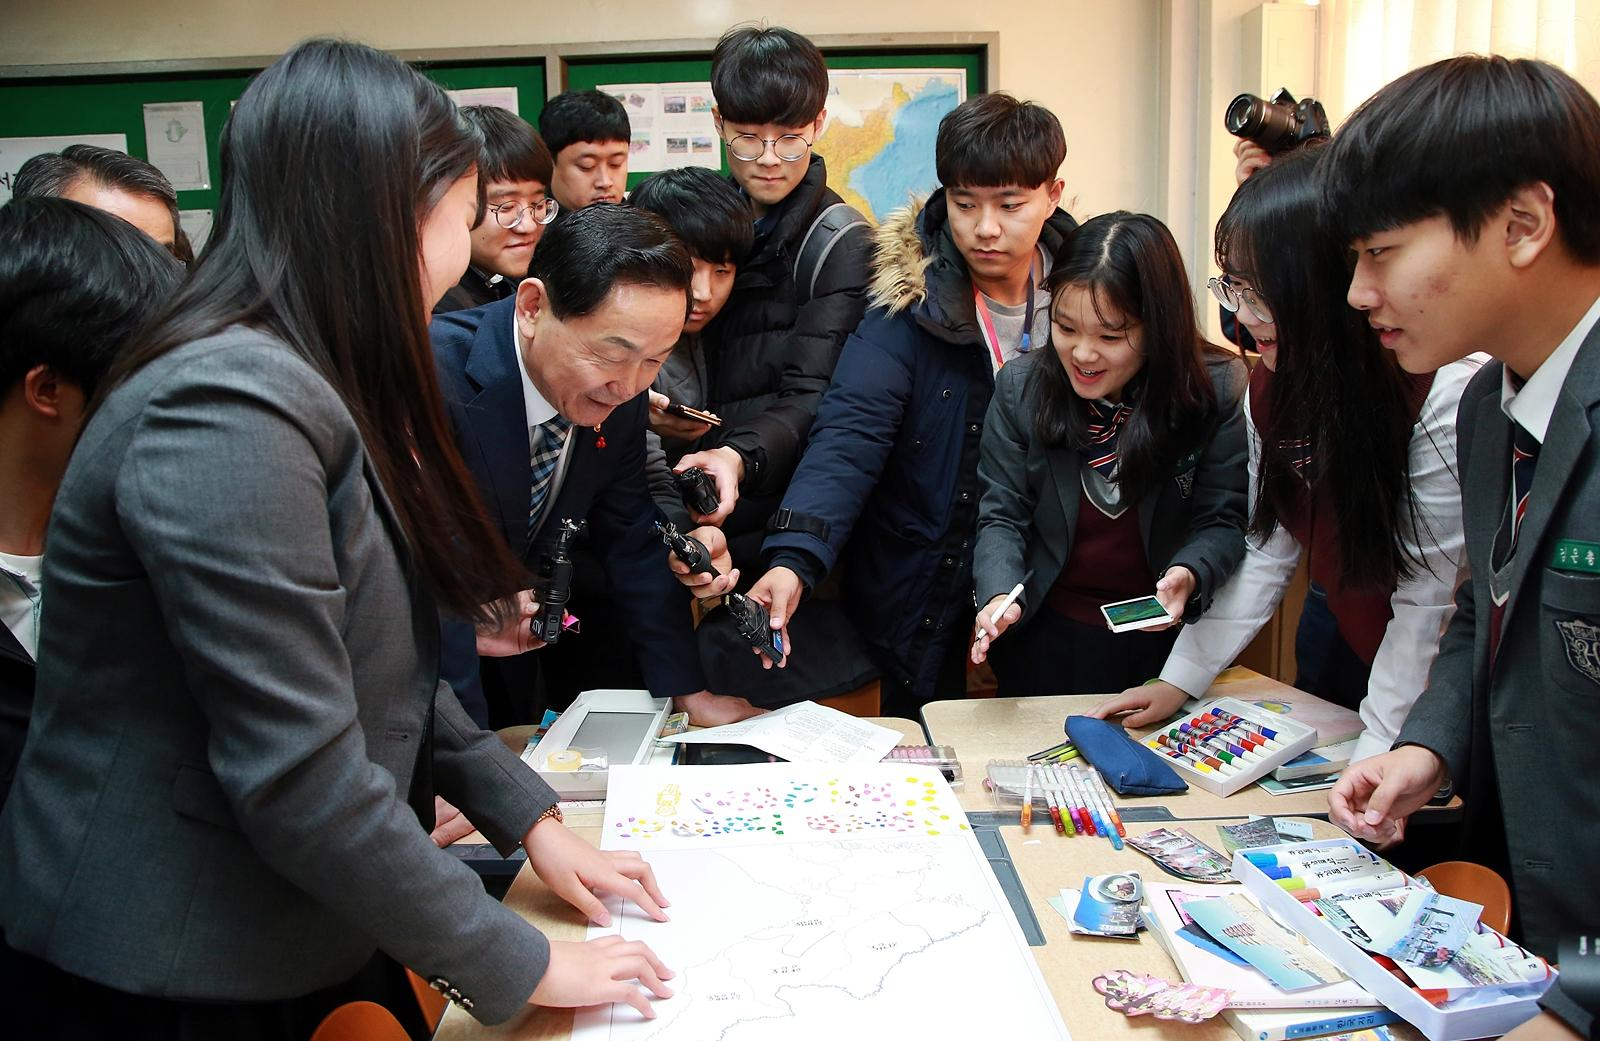 Deputy PM visits High School on the occasion of the announcement of High School Credit System 사진